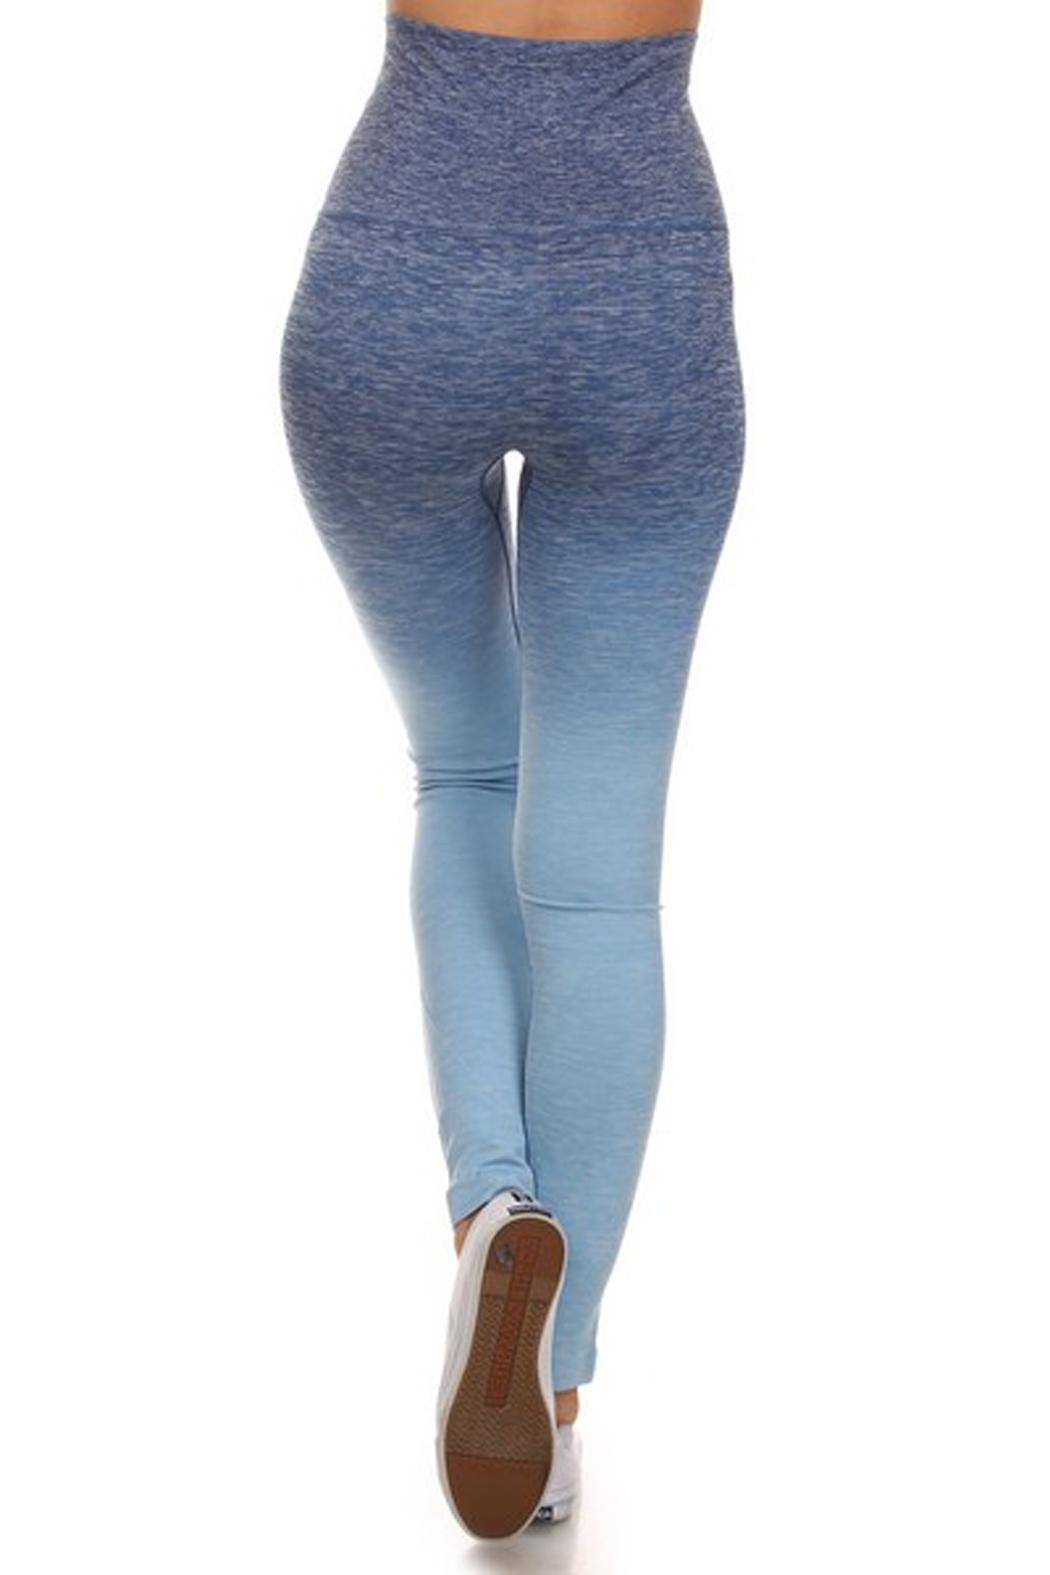 JChronicles Ombre Yoga Pants from Texas — Shoptiques